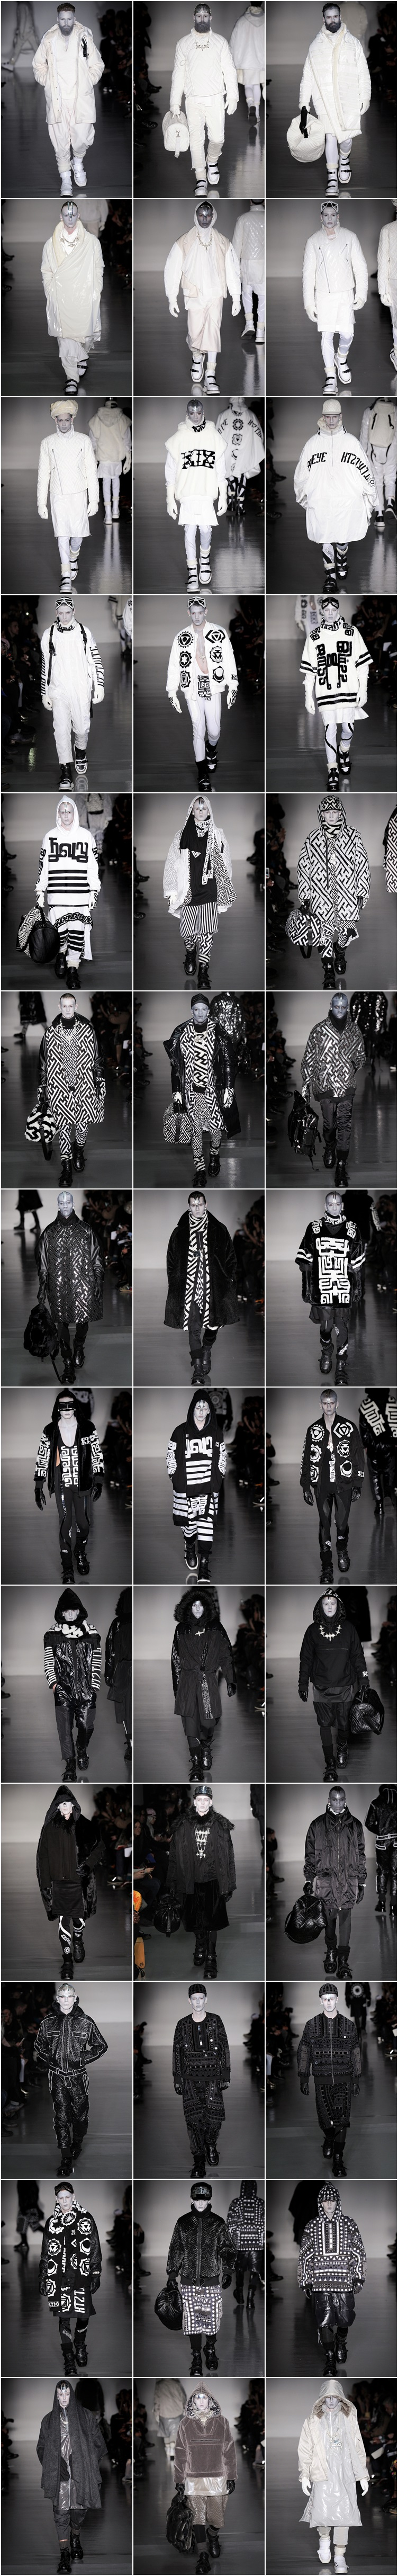 ktz-fall-winter-2014-fashion4addicts.com